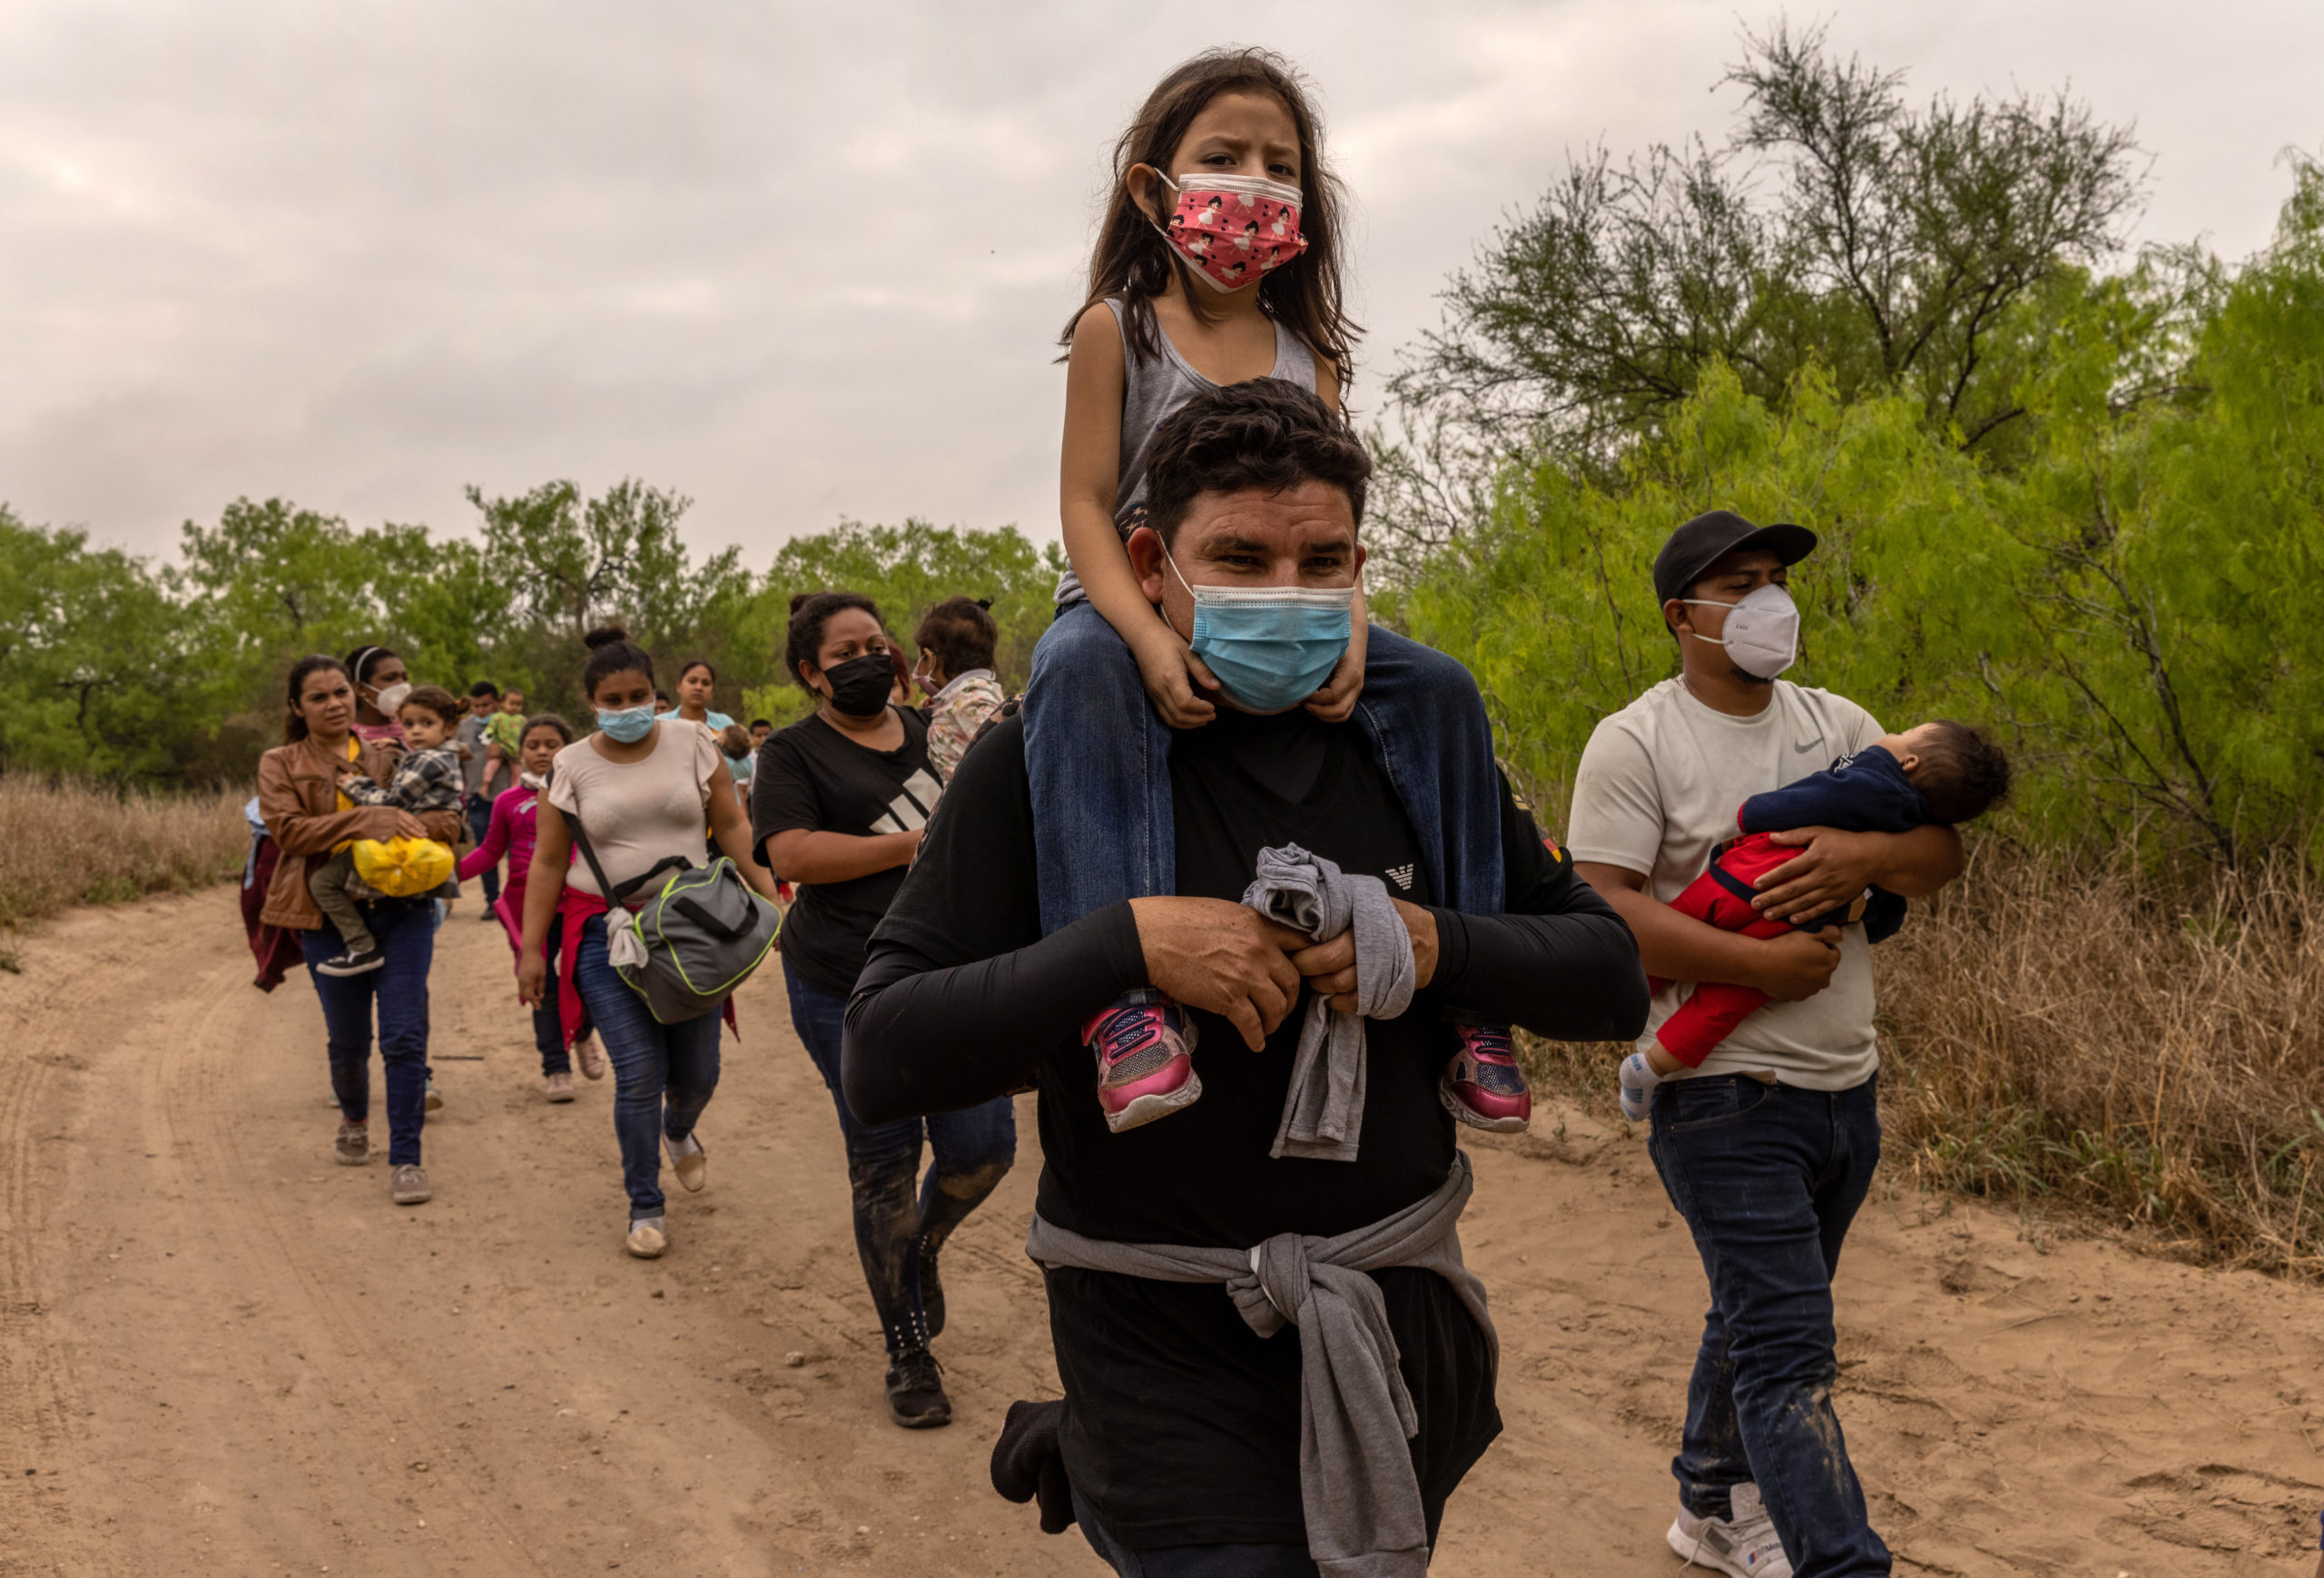 Asylum seekers, most from Honduras, walk towards a U.S. Border Patrol checkpoint after crossing the Rio Grande from Mexico on March 23, 2021 near Mission, Texas.(Photo by John Moore/Getty Images)